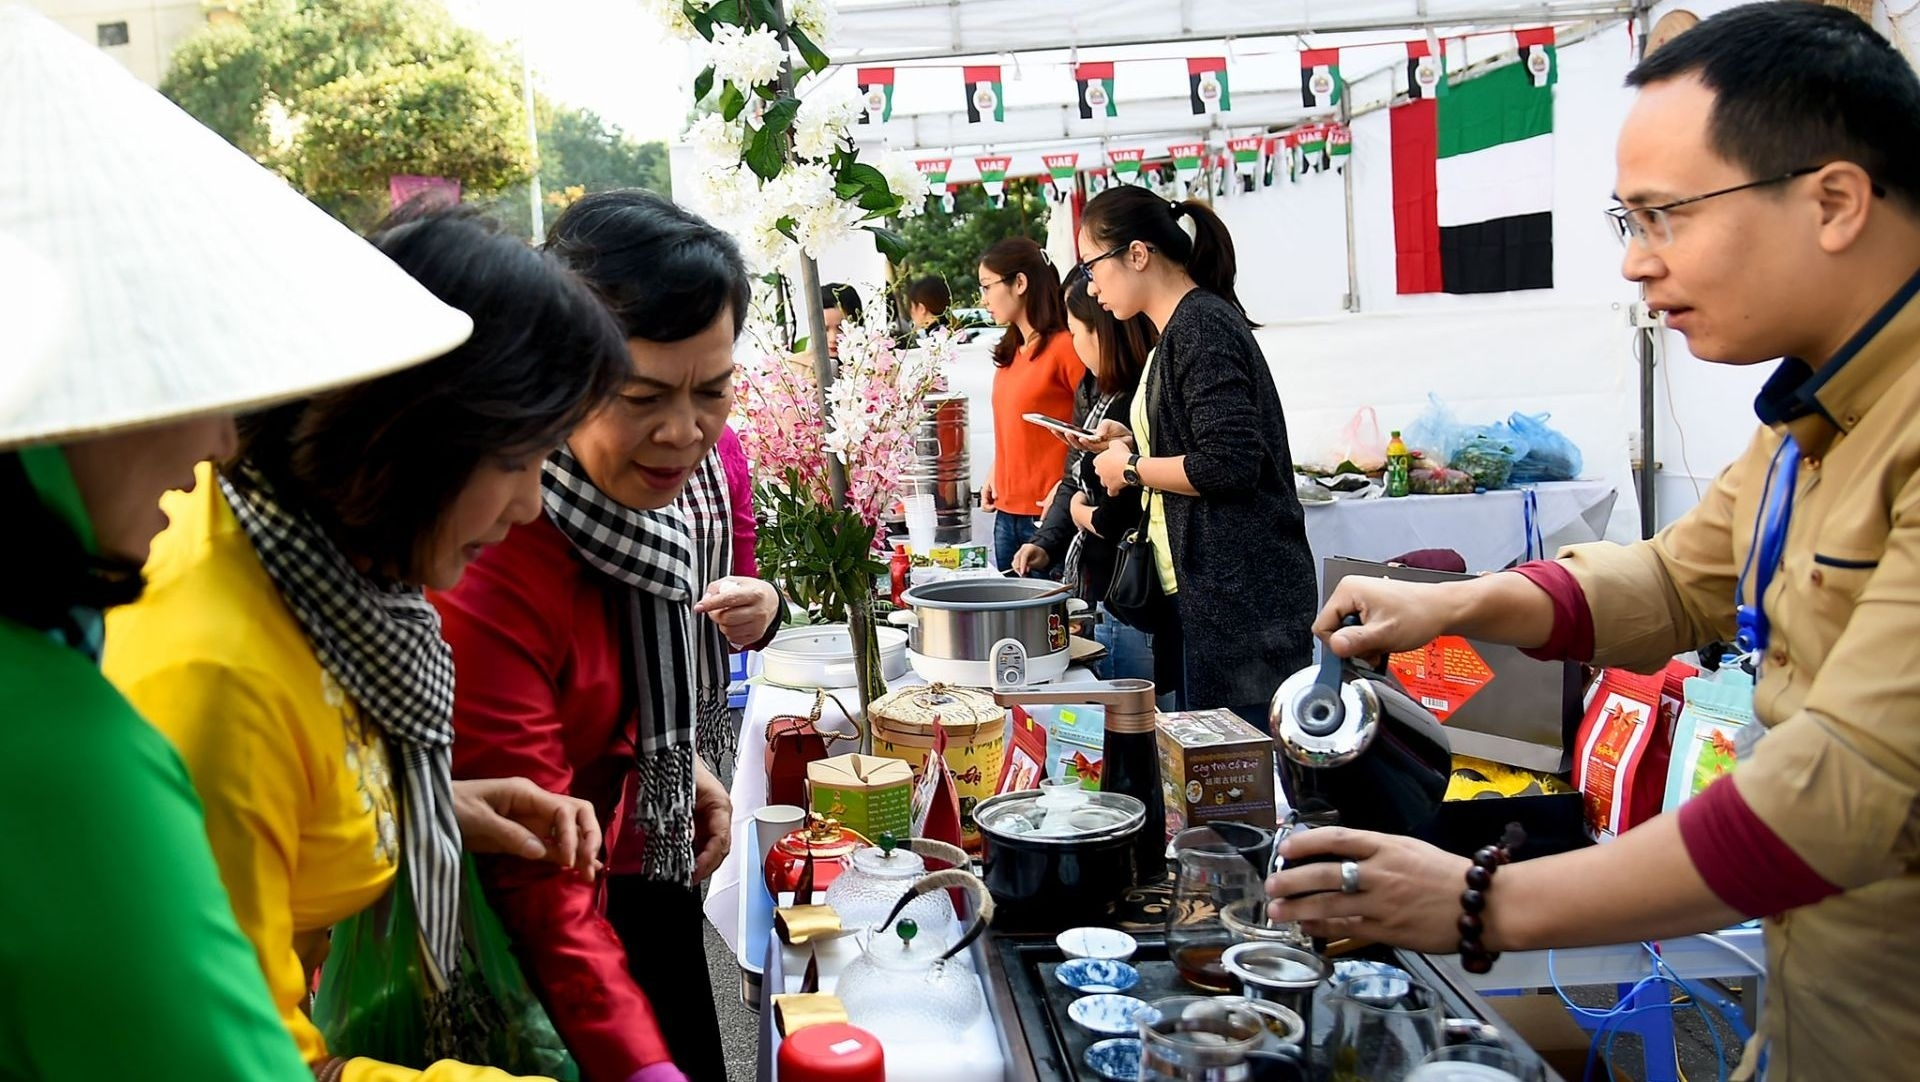 International Food Festival 2020 to kick off in Hanoi this weekend